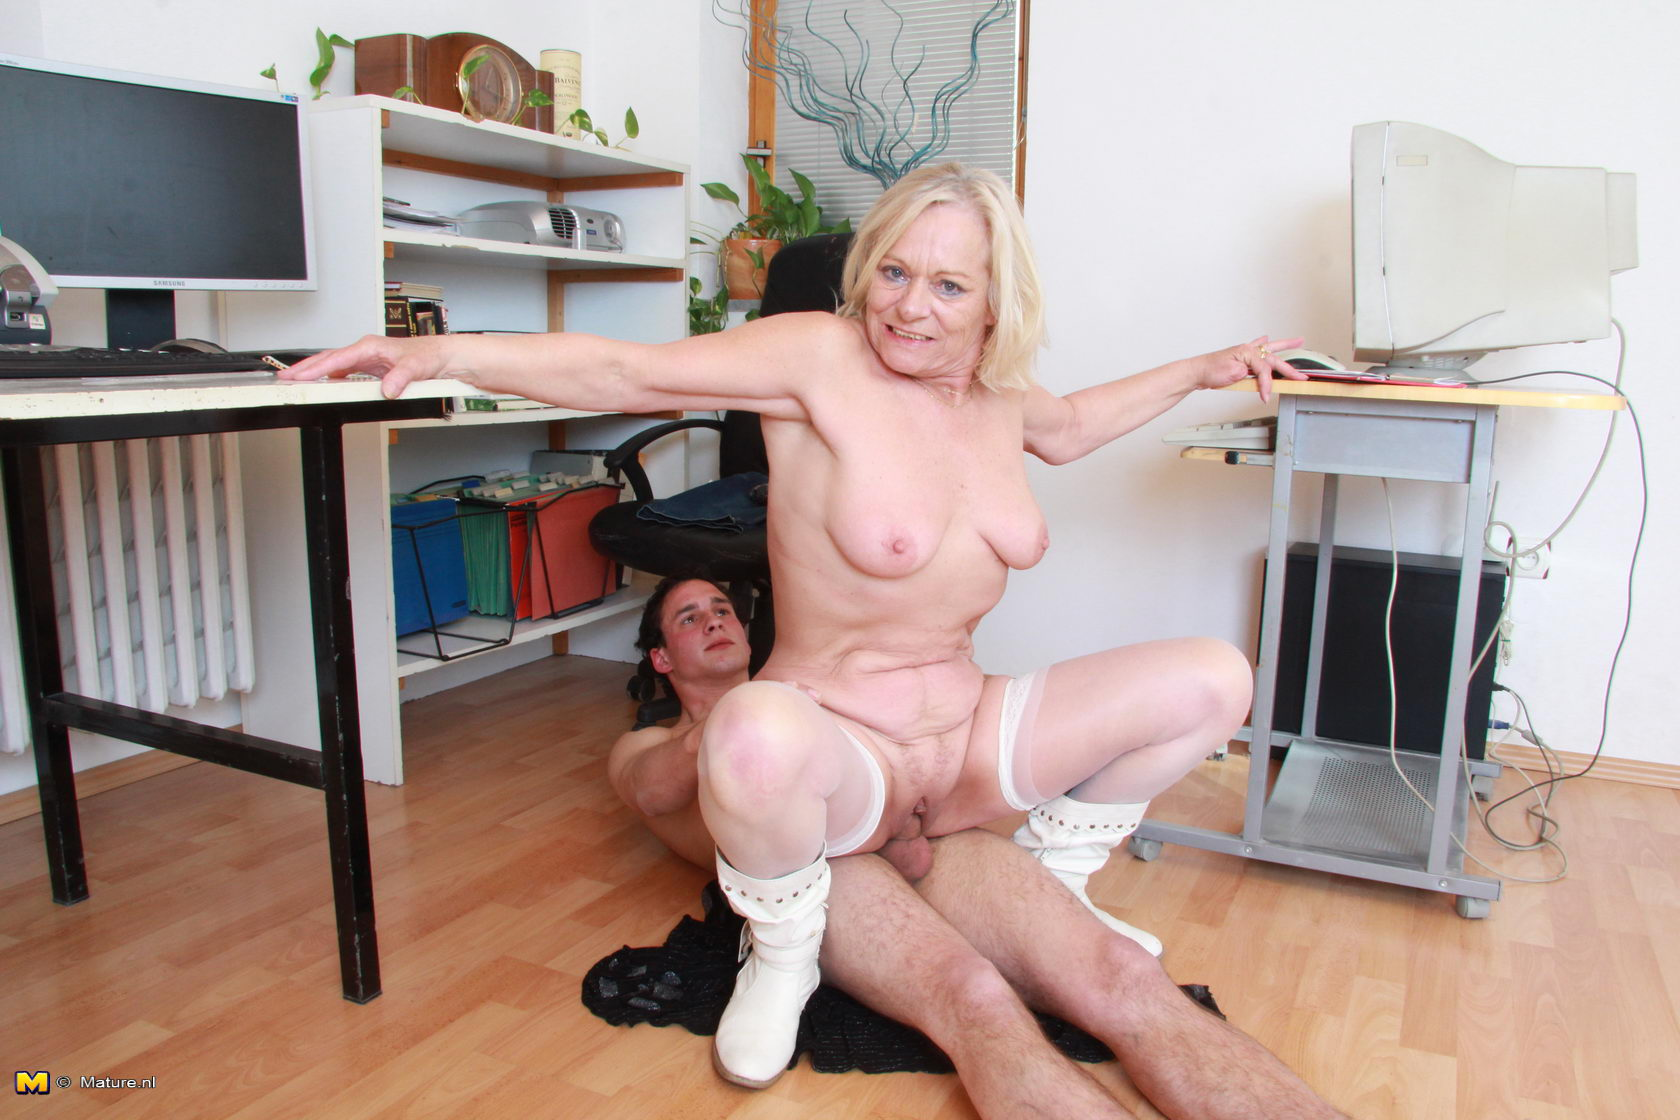 Horny slut fucks office hunk on desk as hot young pa watches